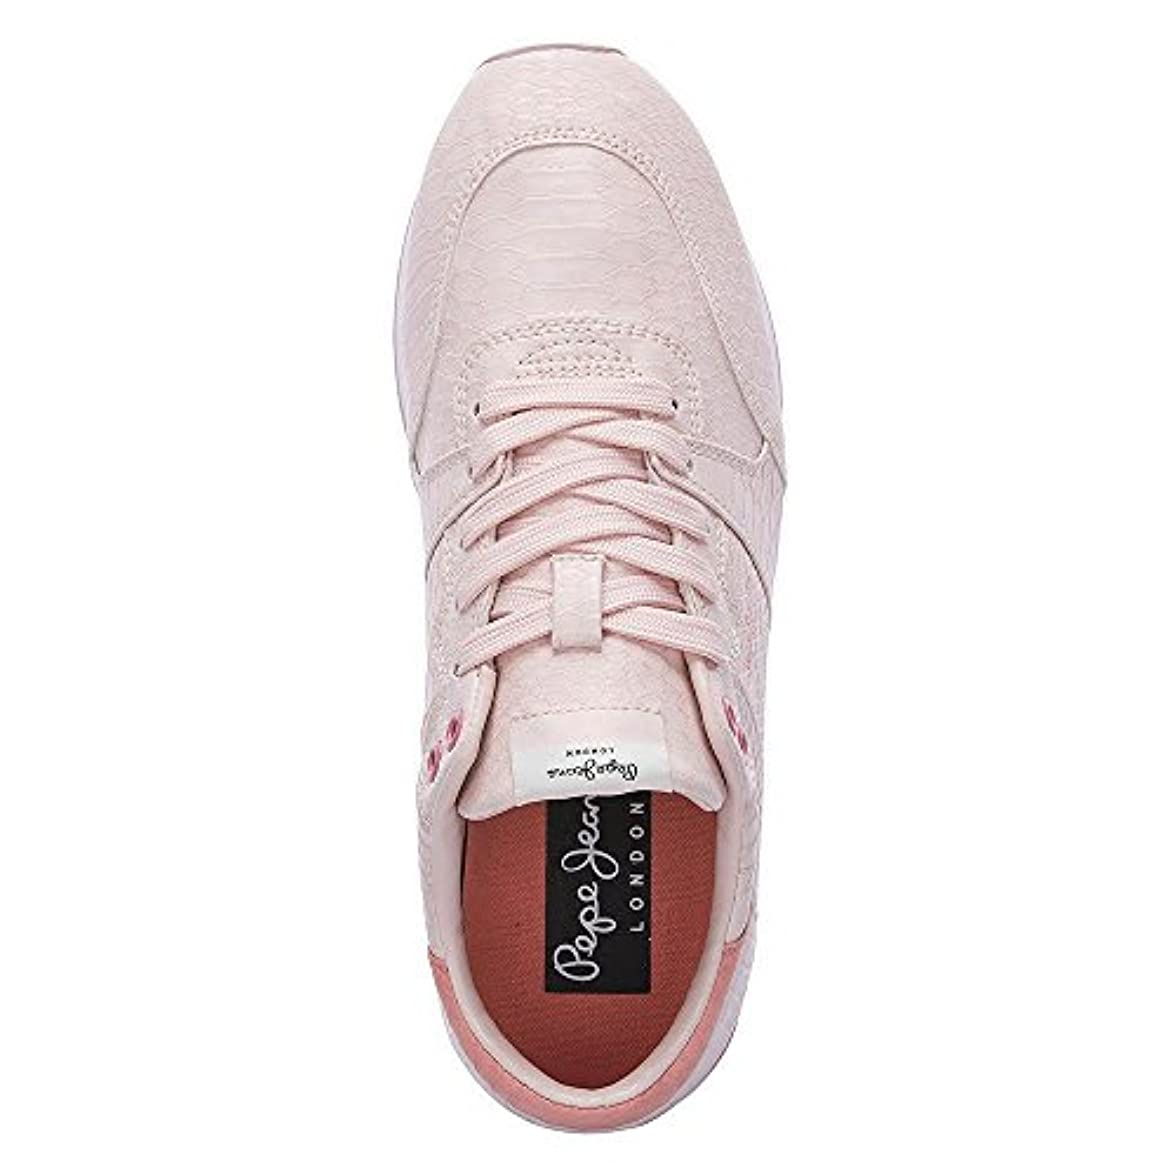 Pepe Jeans London Sneaker Donna Rosa